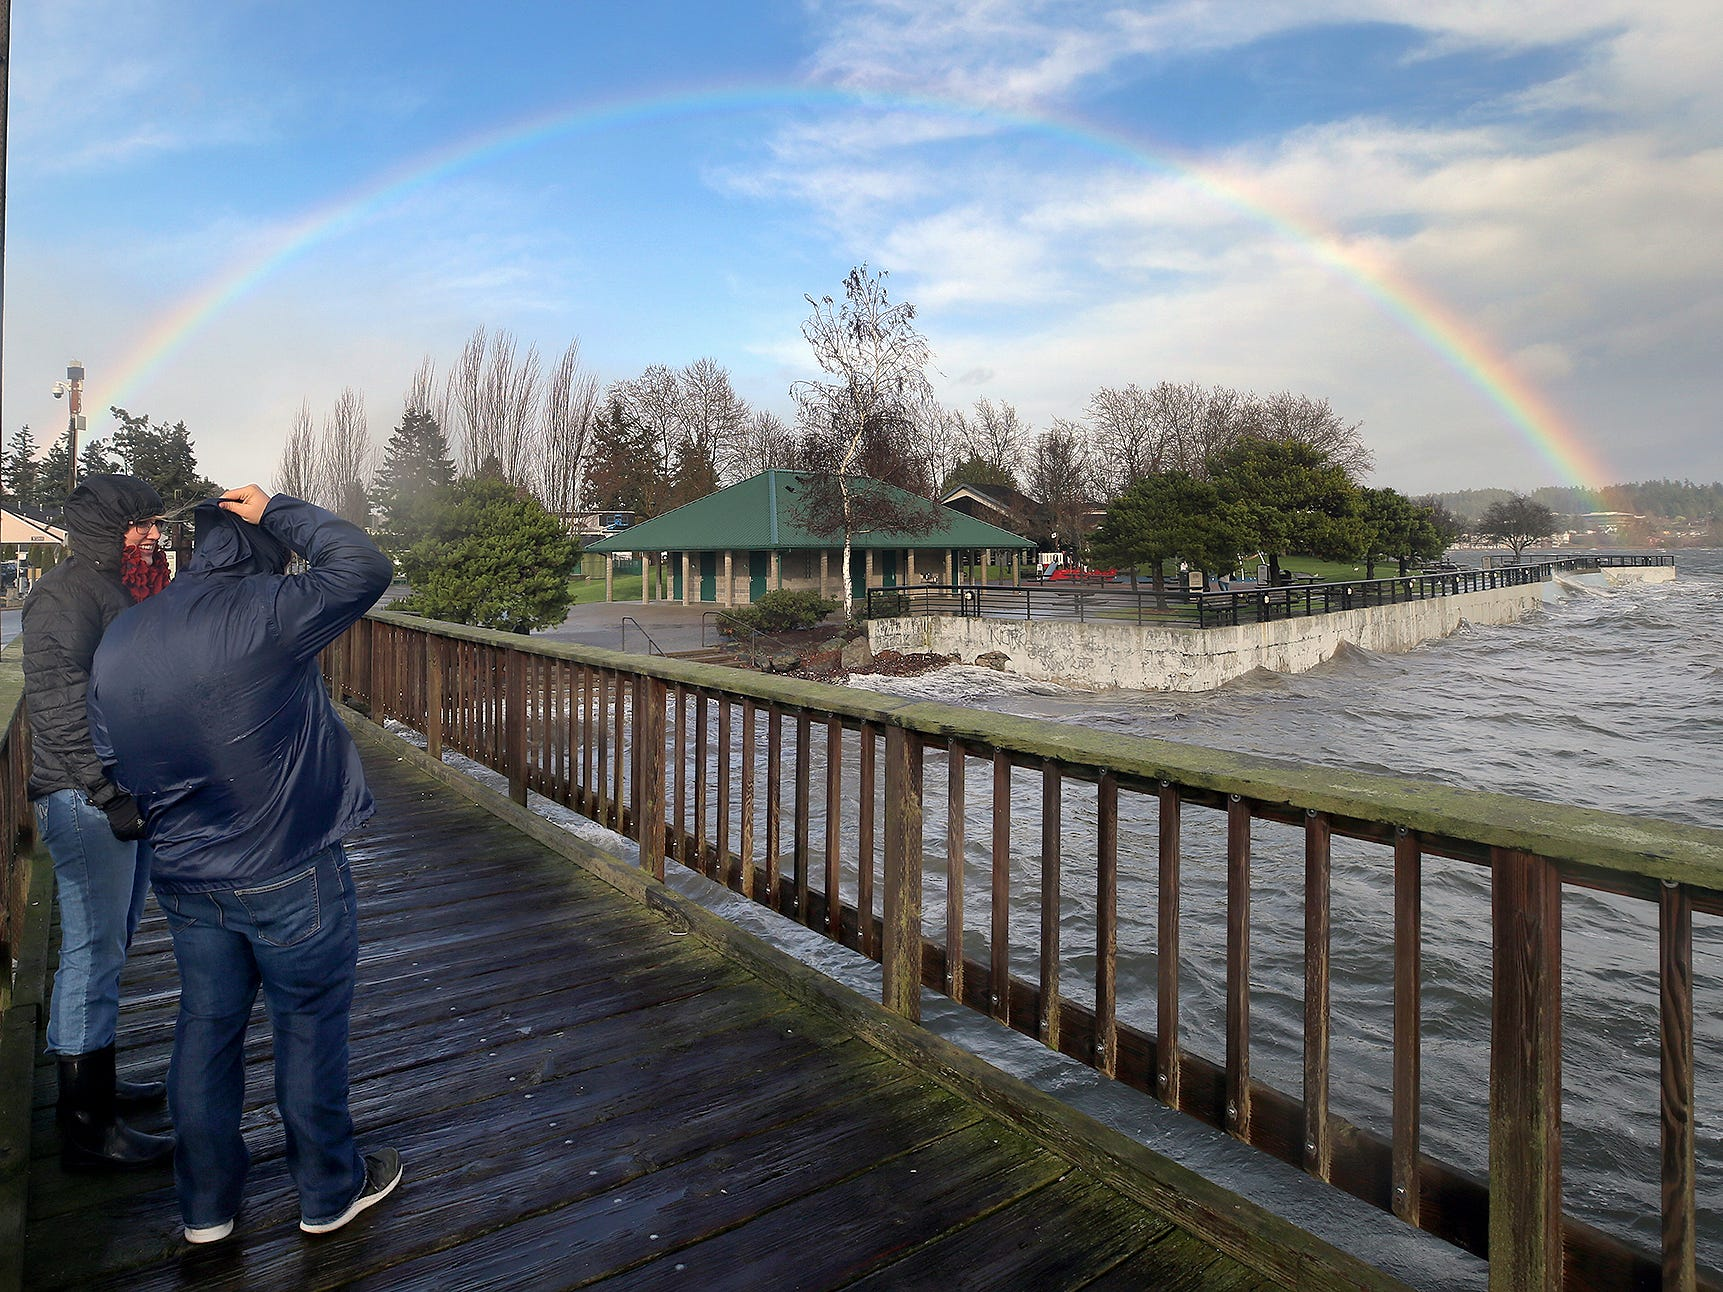 Jessica Curry, and Kyle Doth visiting during the holiday break from college have a break in the rain as a rainbow appears at Silverdale Waterfront Park Dock  on Thursday, December, 20, 2018.